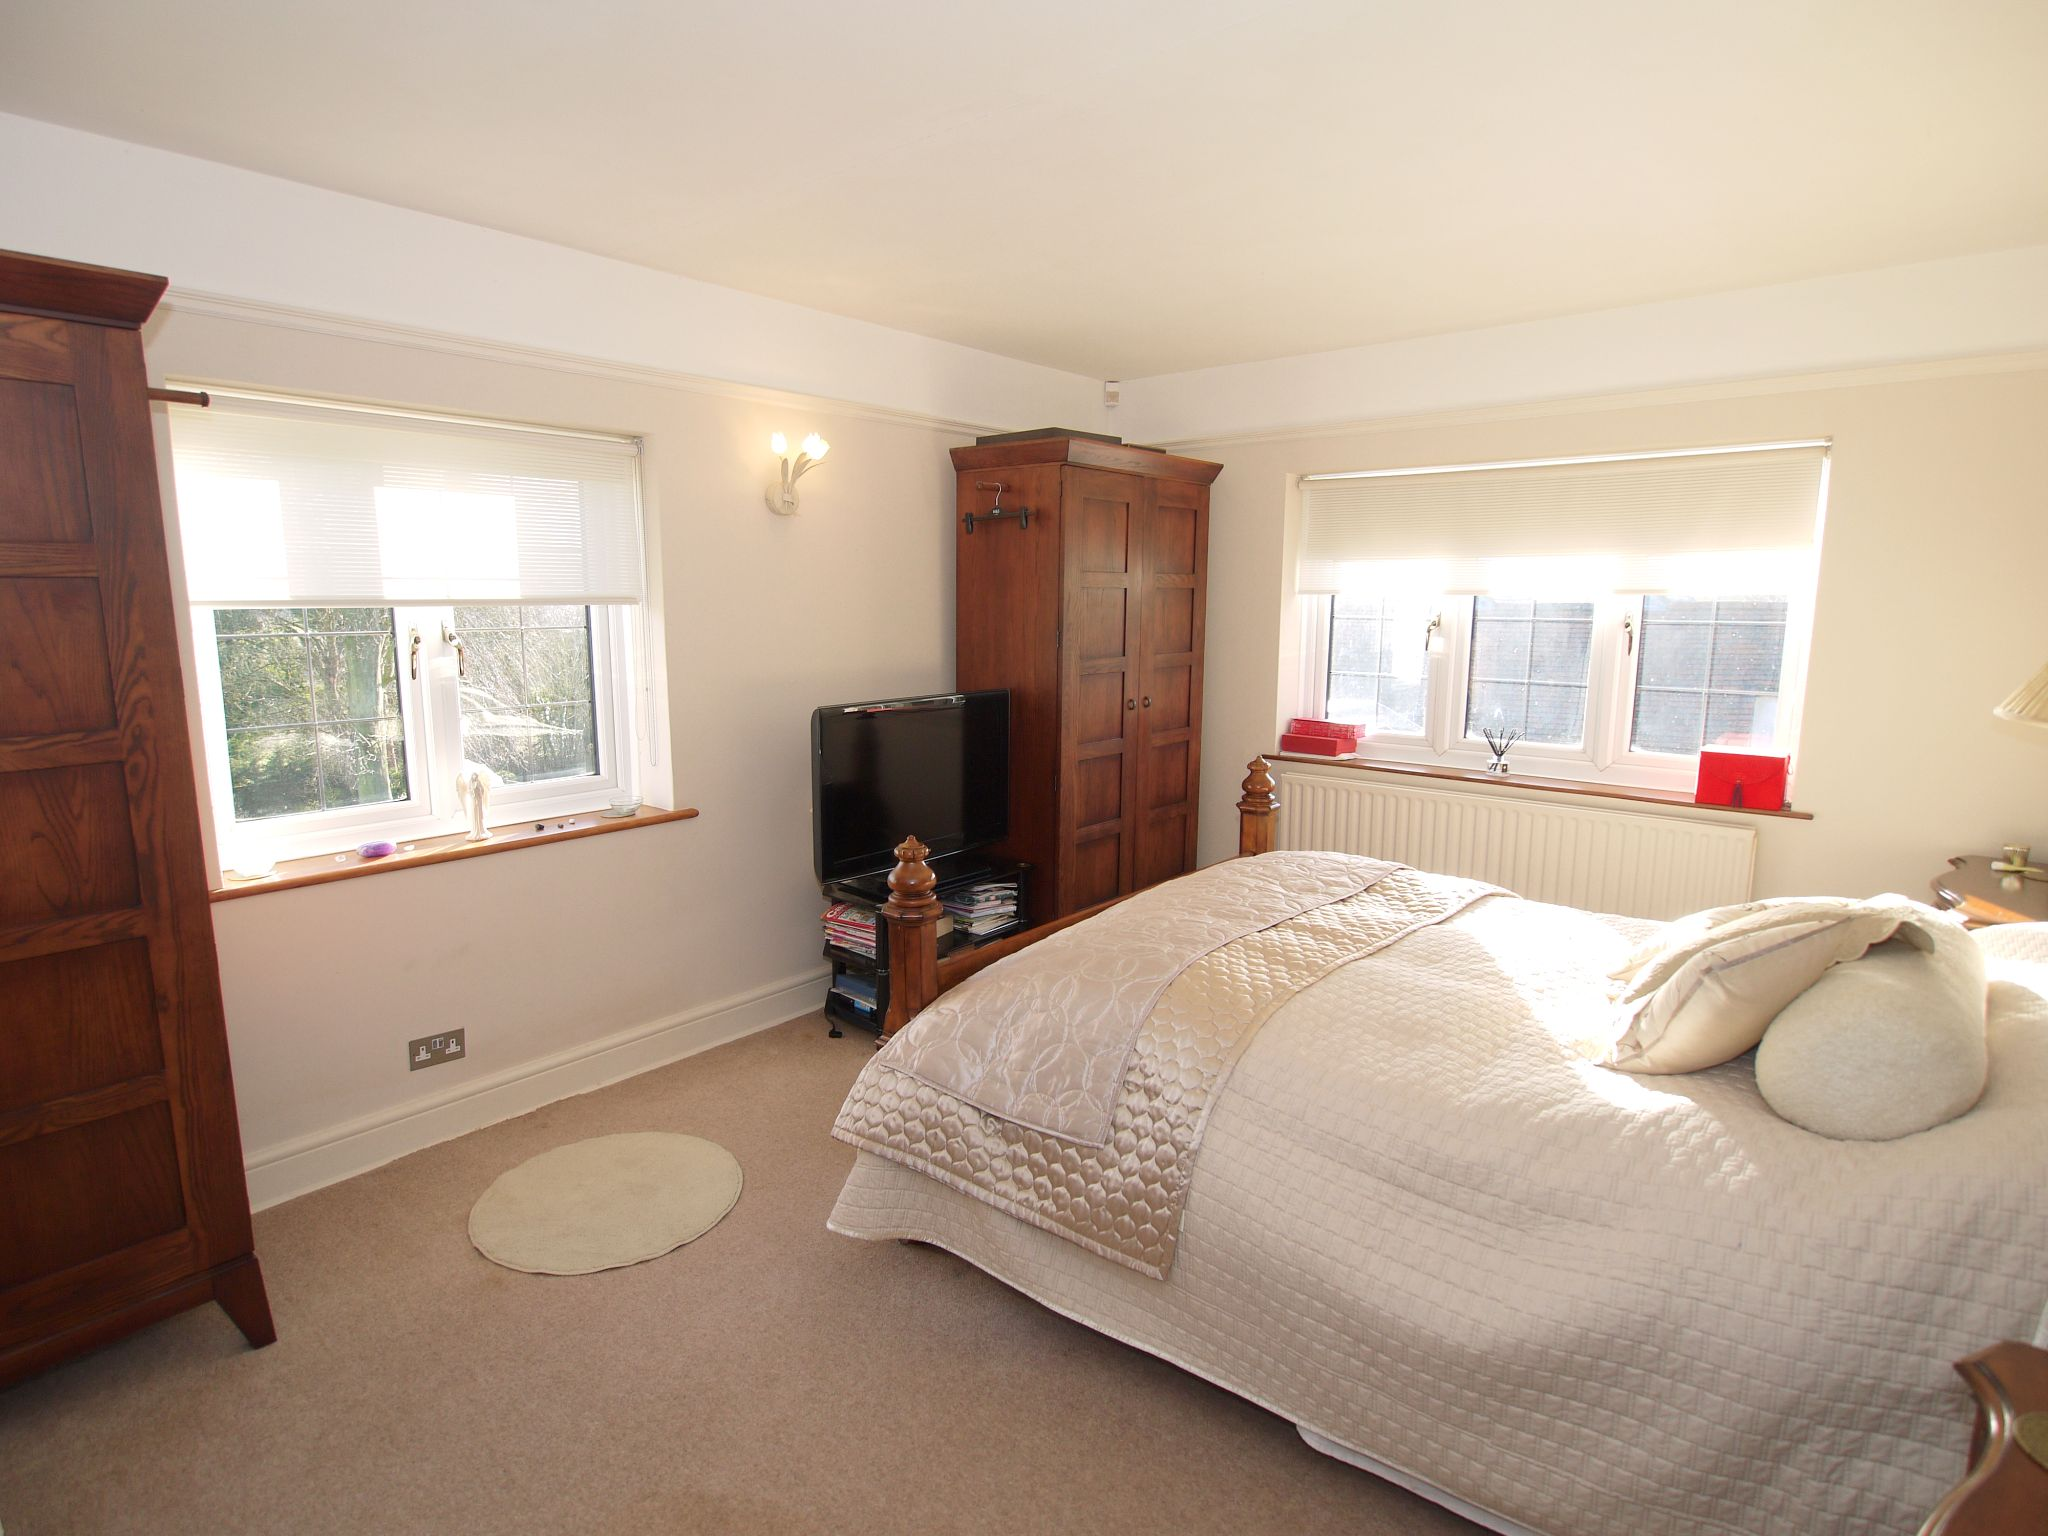 4 bedroom detached house For Sale in Farningham - Photograph 10